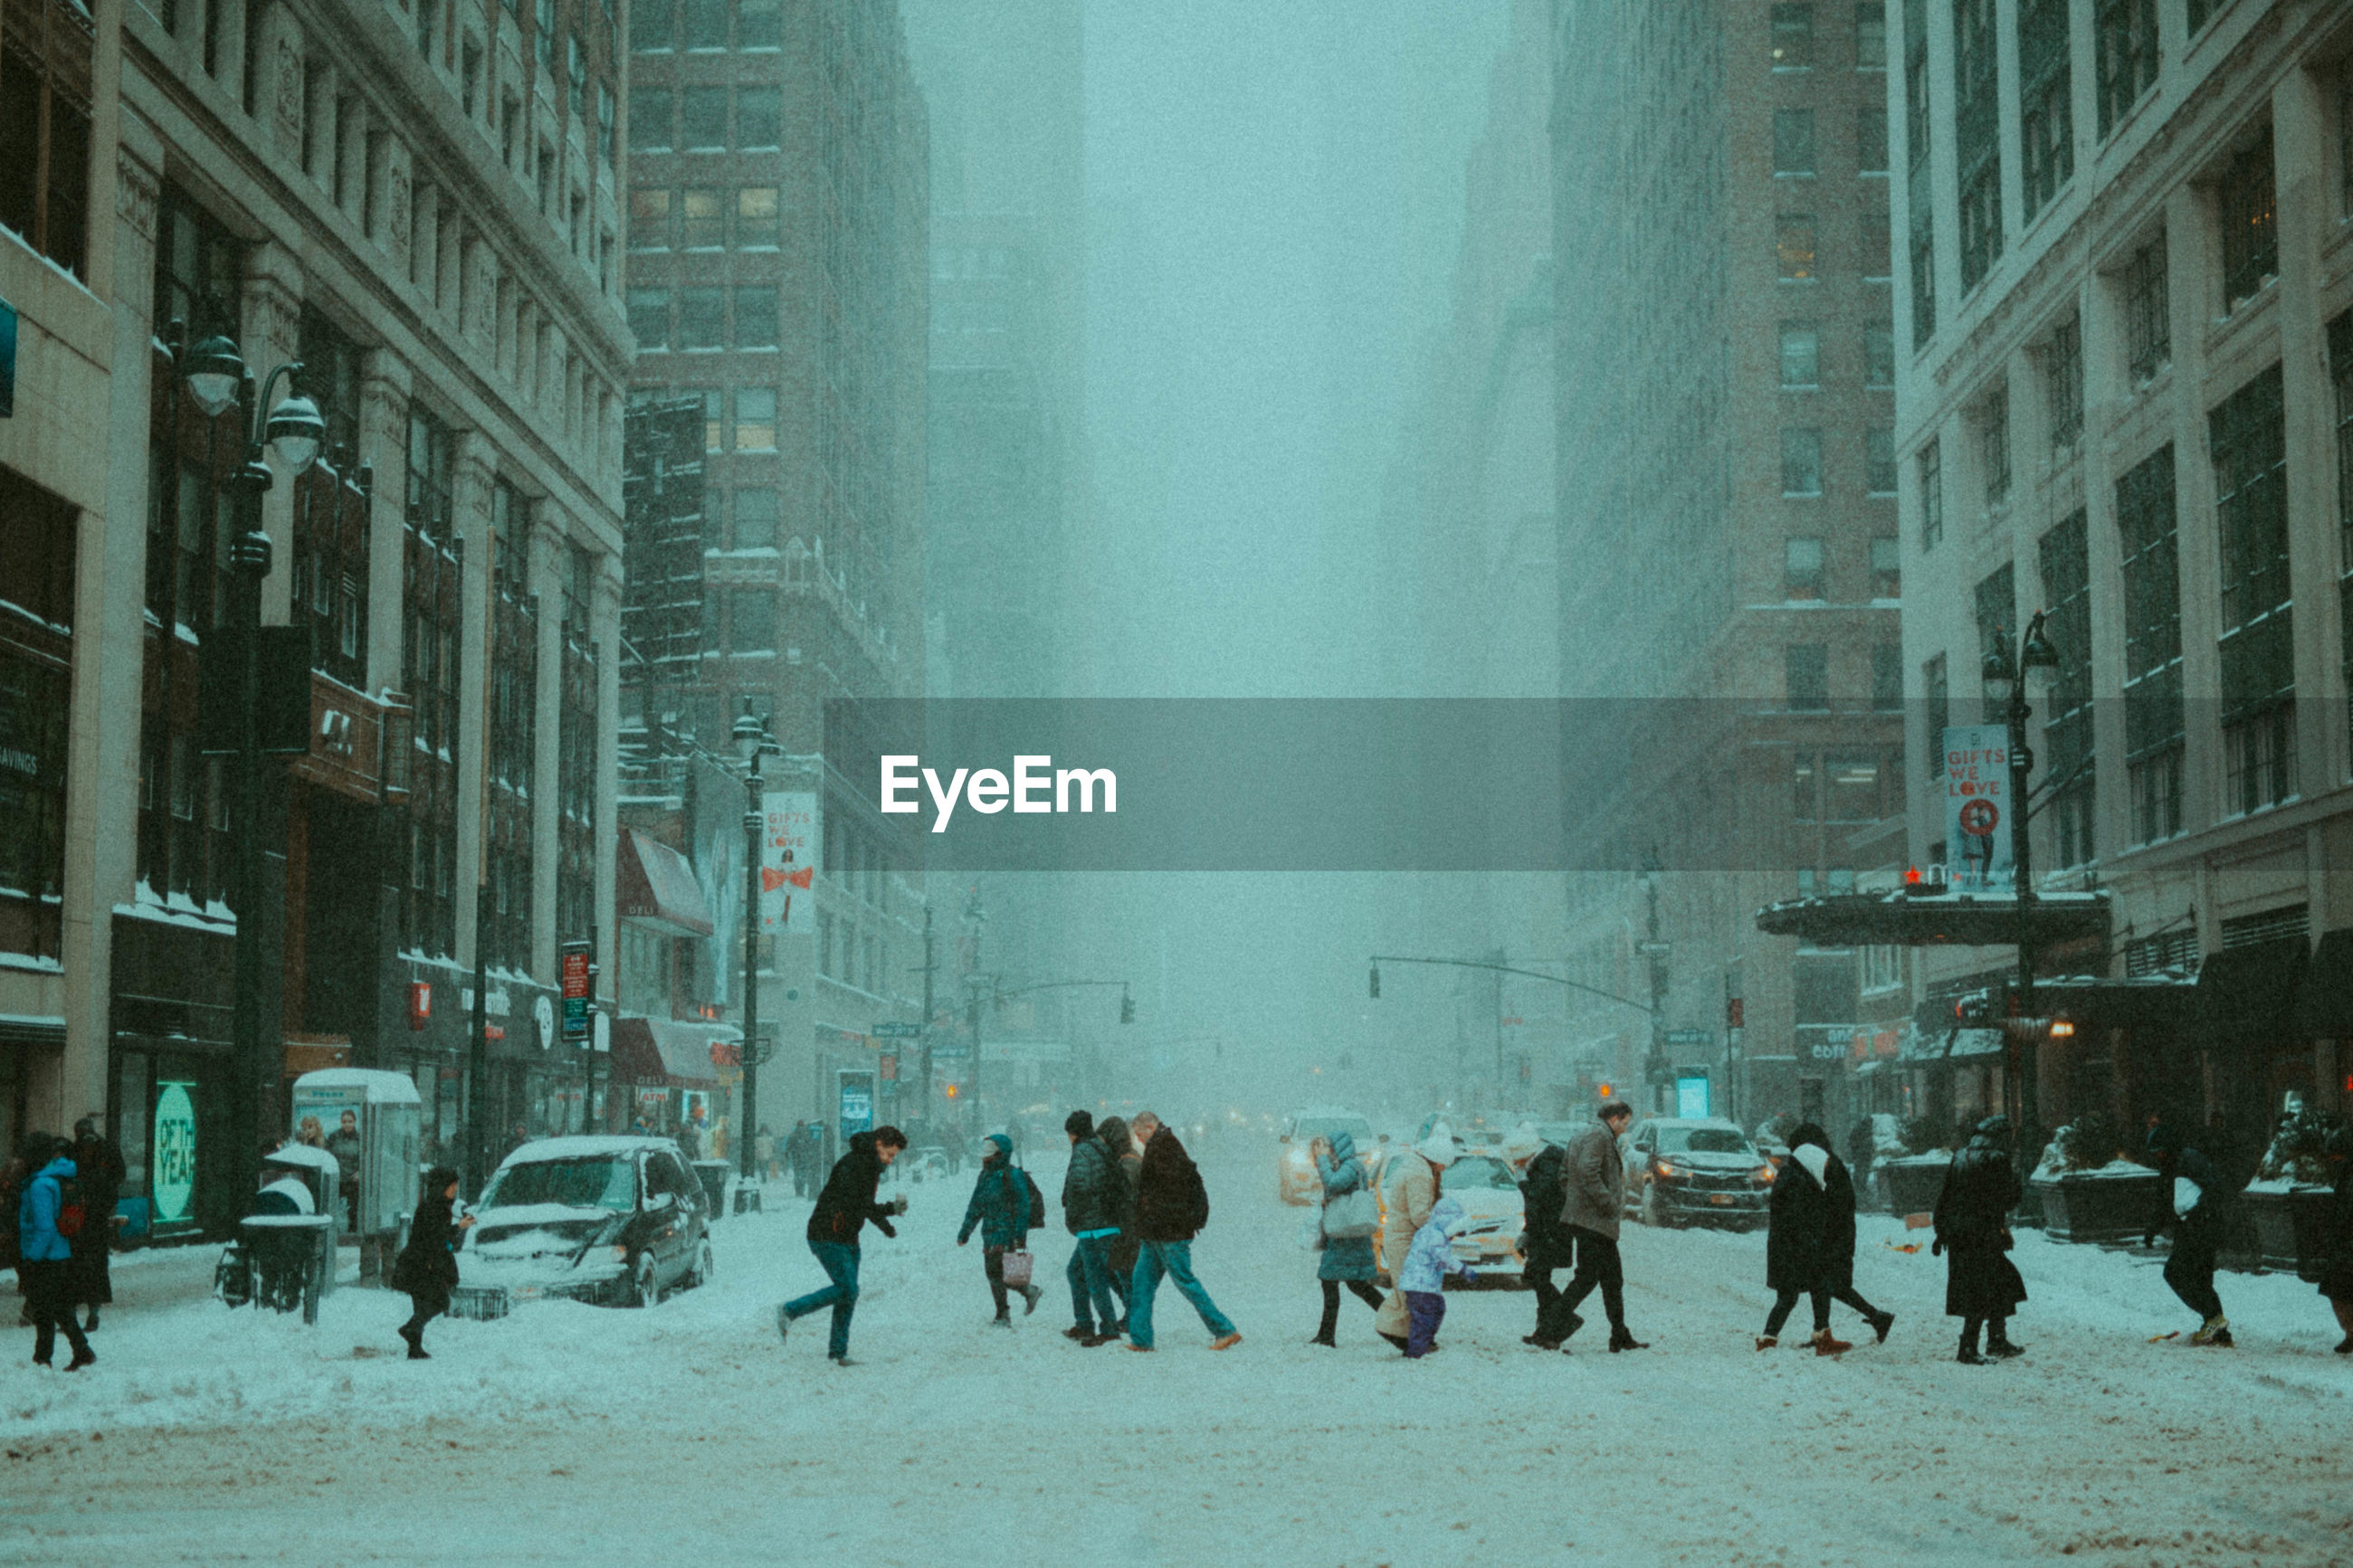 GROUP OF PEOPLE IN CITY DURING WINTER